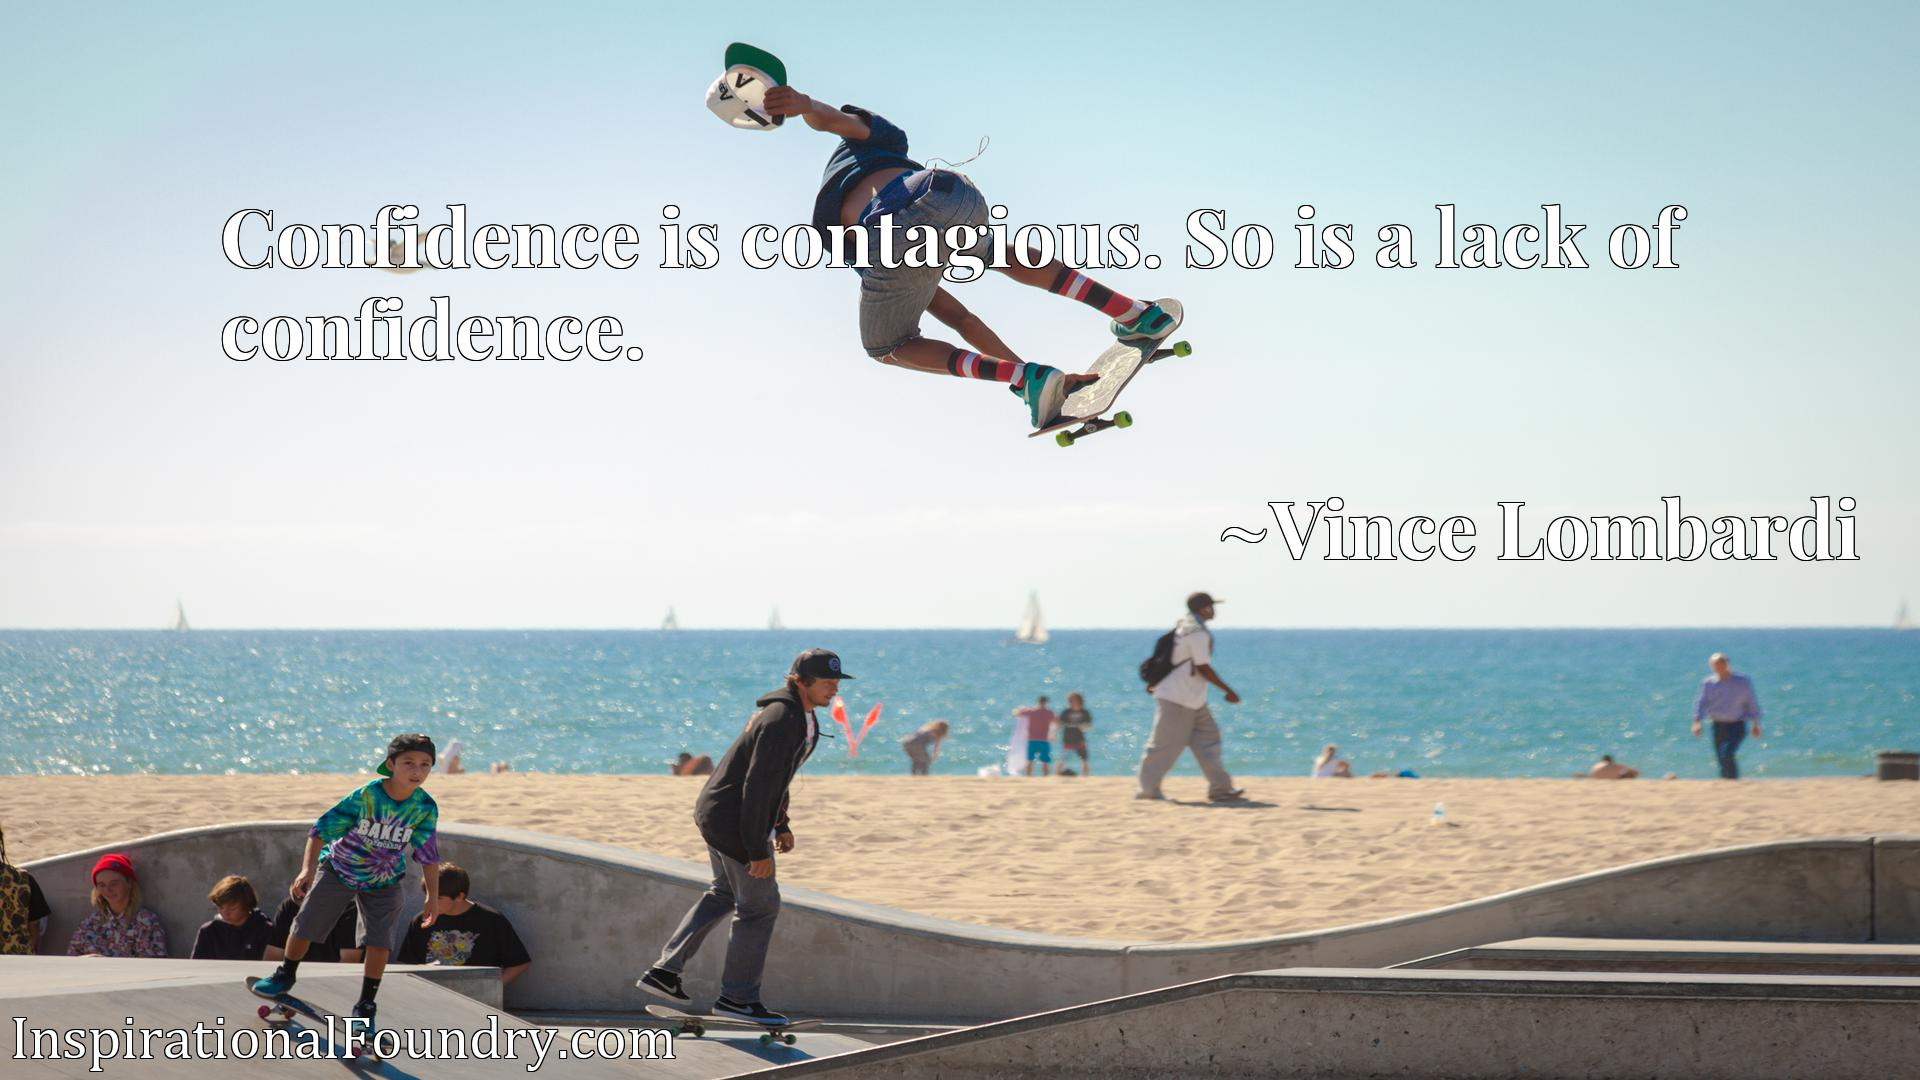 Confidence is contagious. So is a lack of confidence.